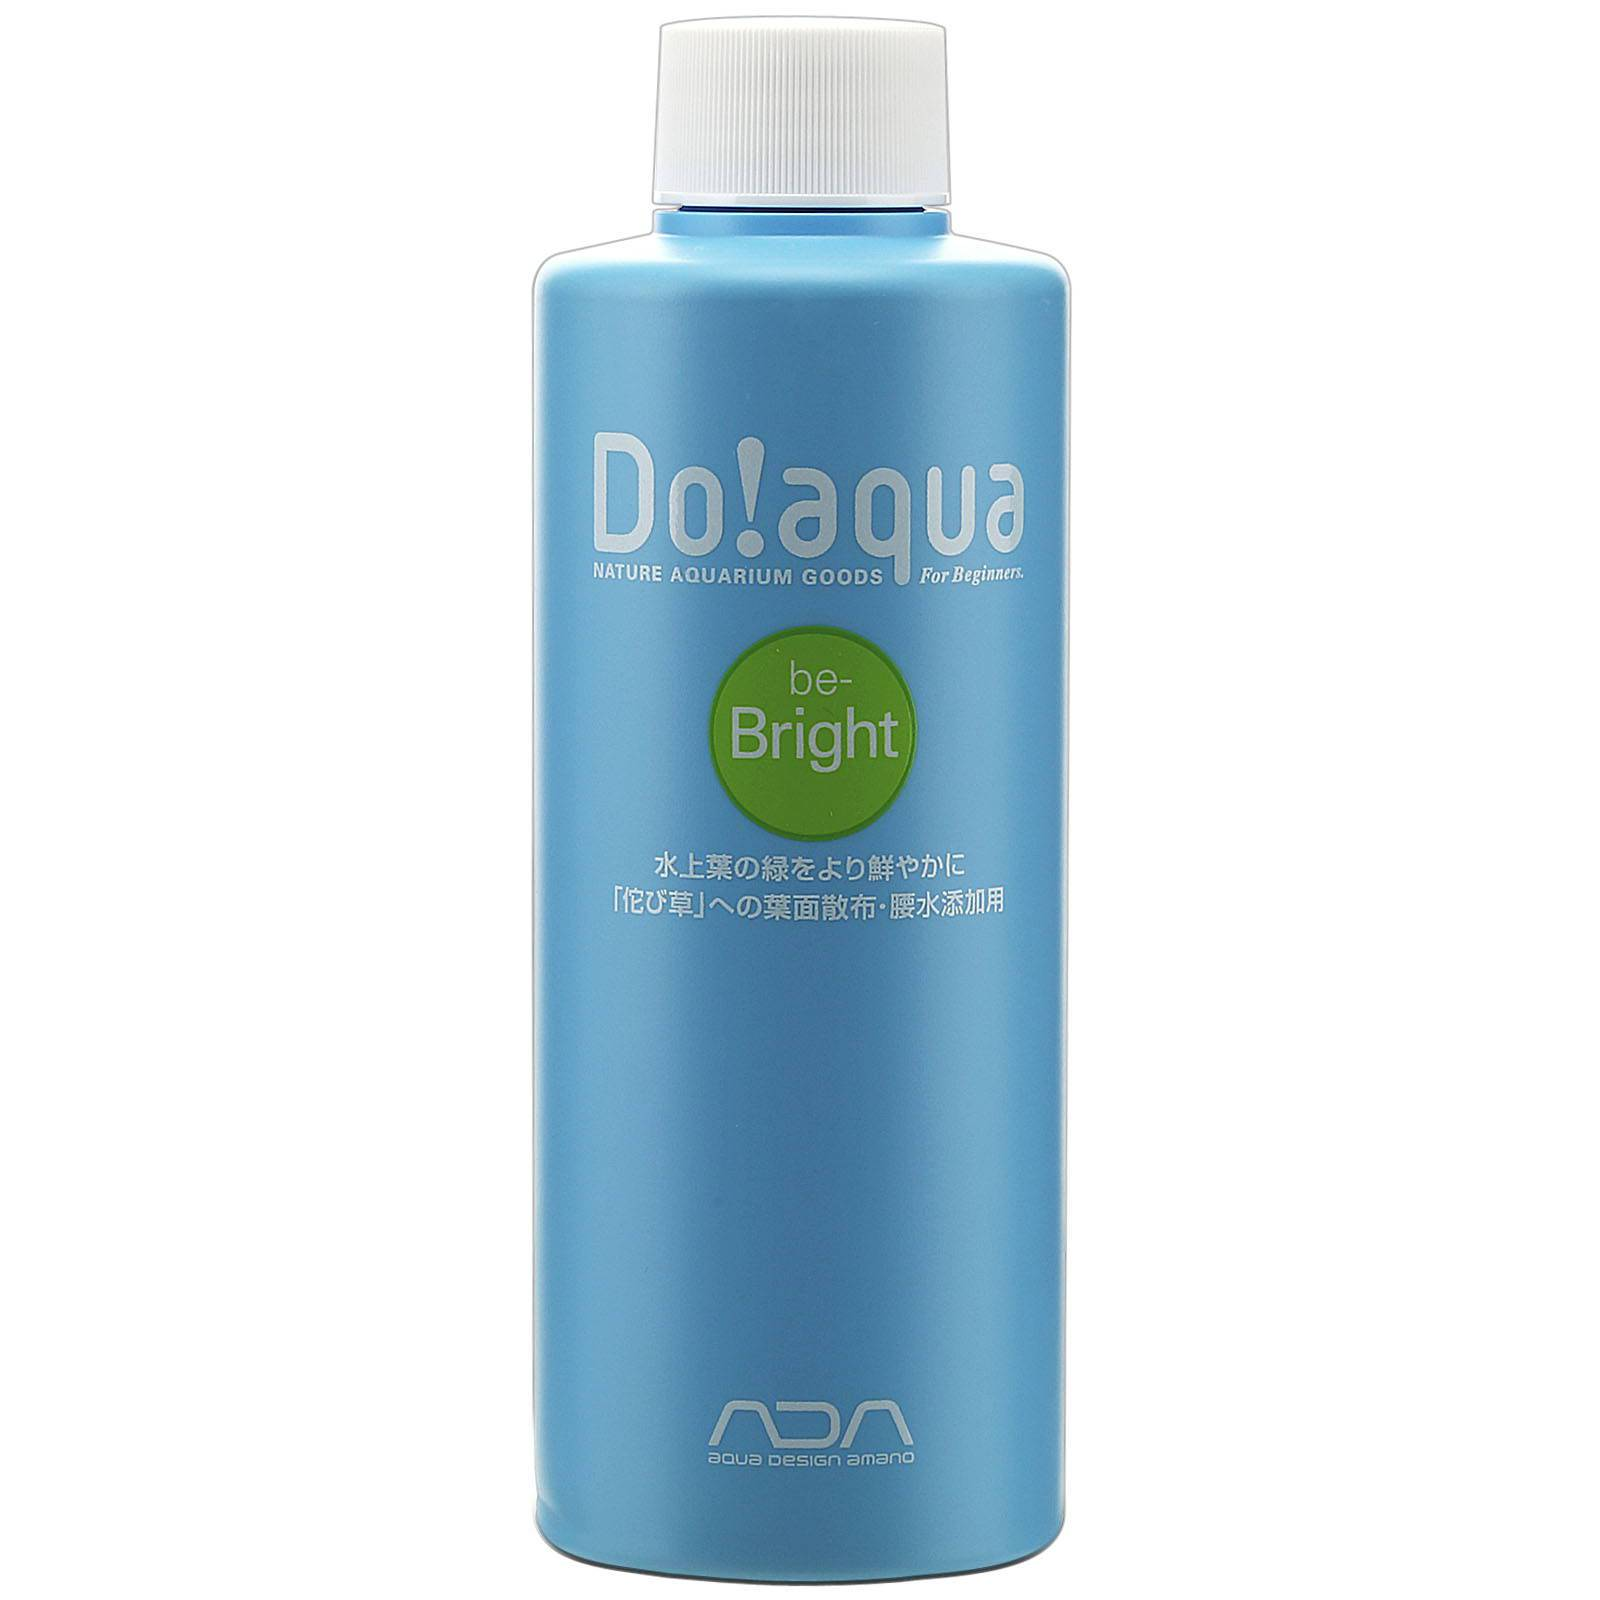 Do!aqua - be Bright - 200 ml